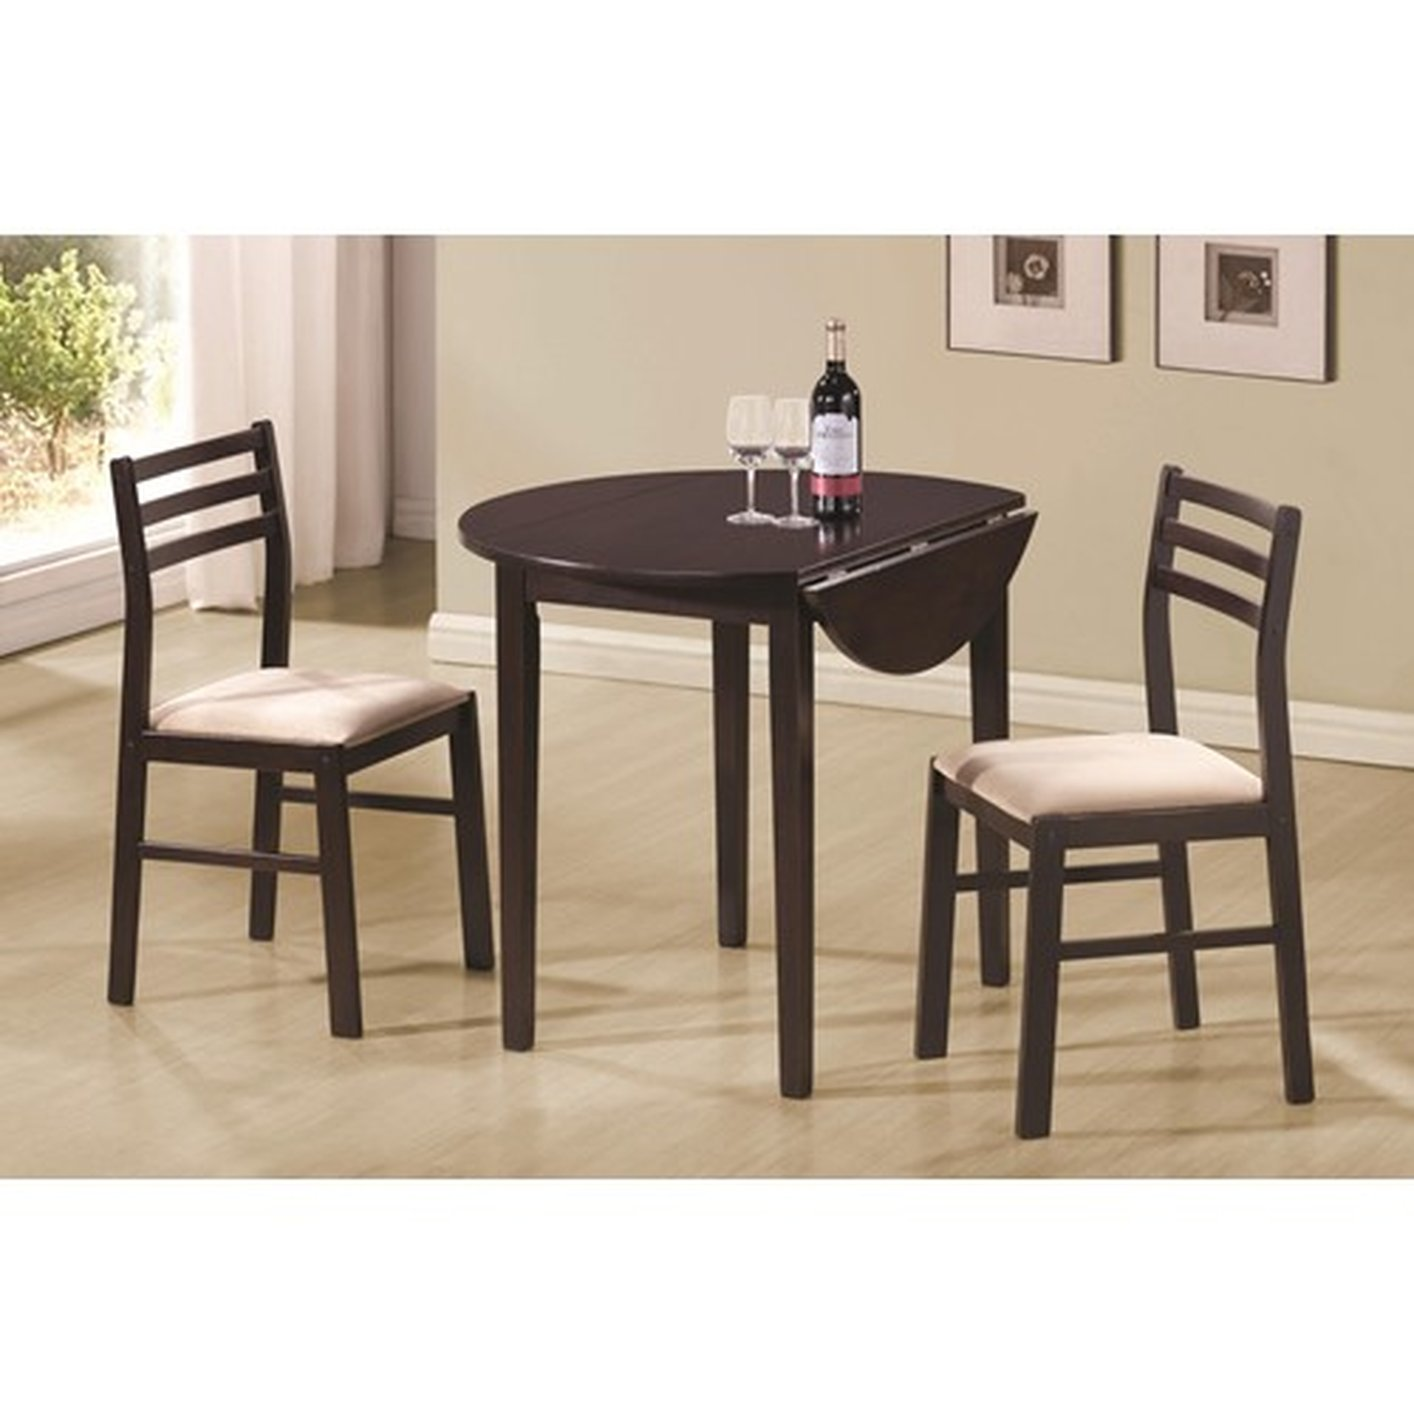 Coaster 130005 brown wood dining table and chair set for Furniture 90036